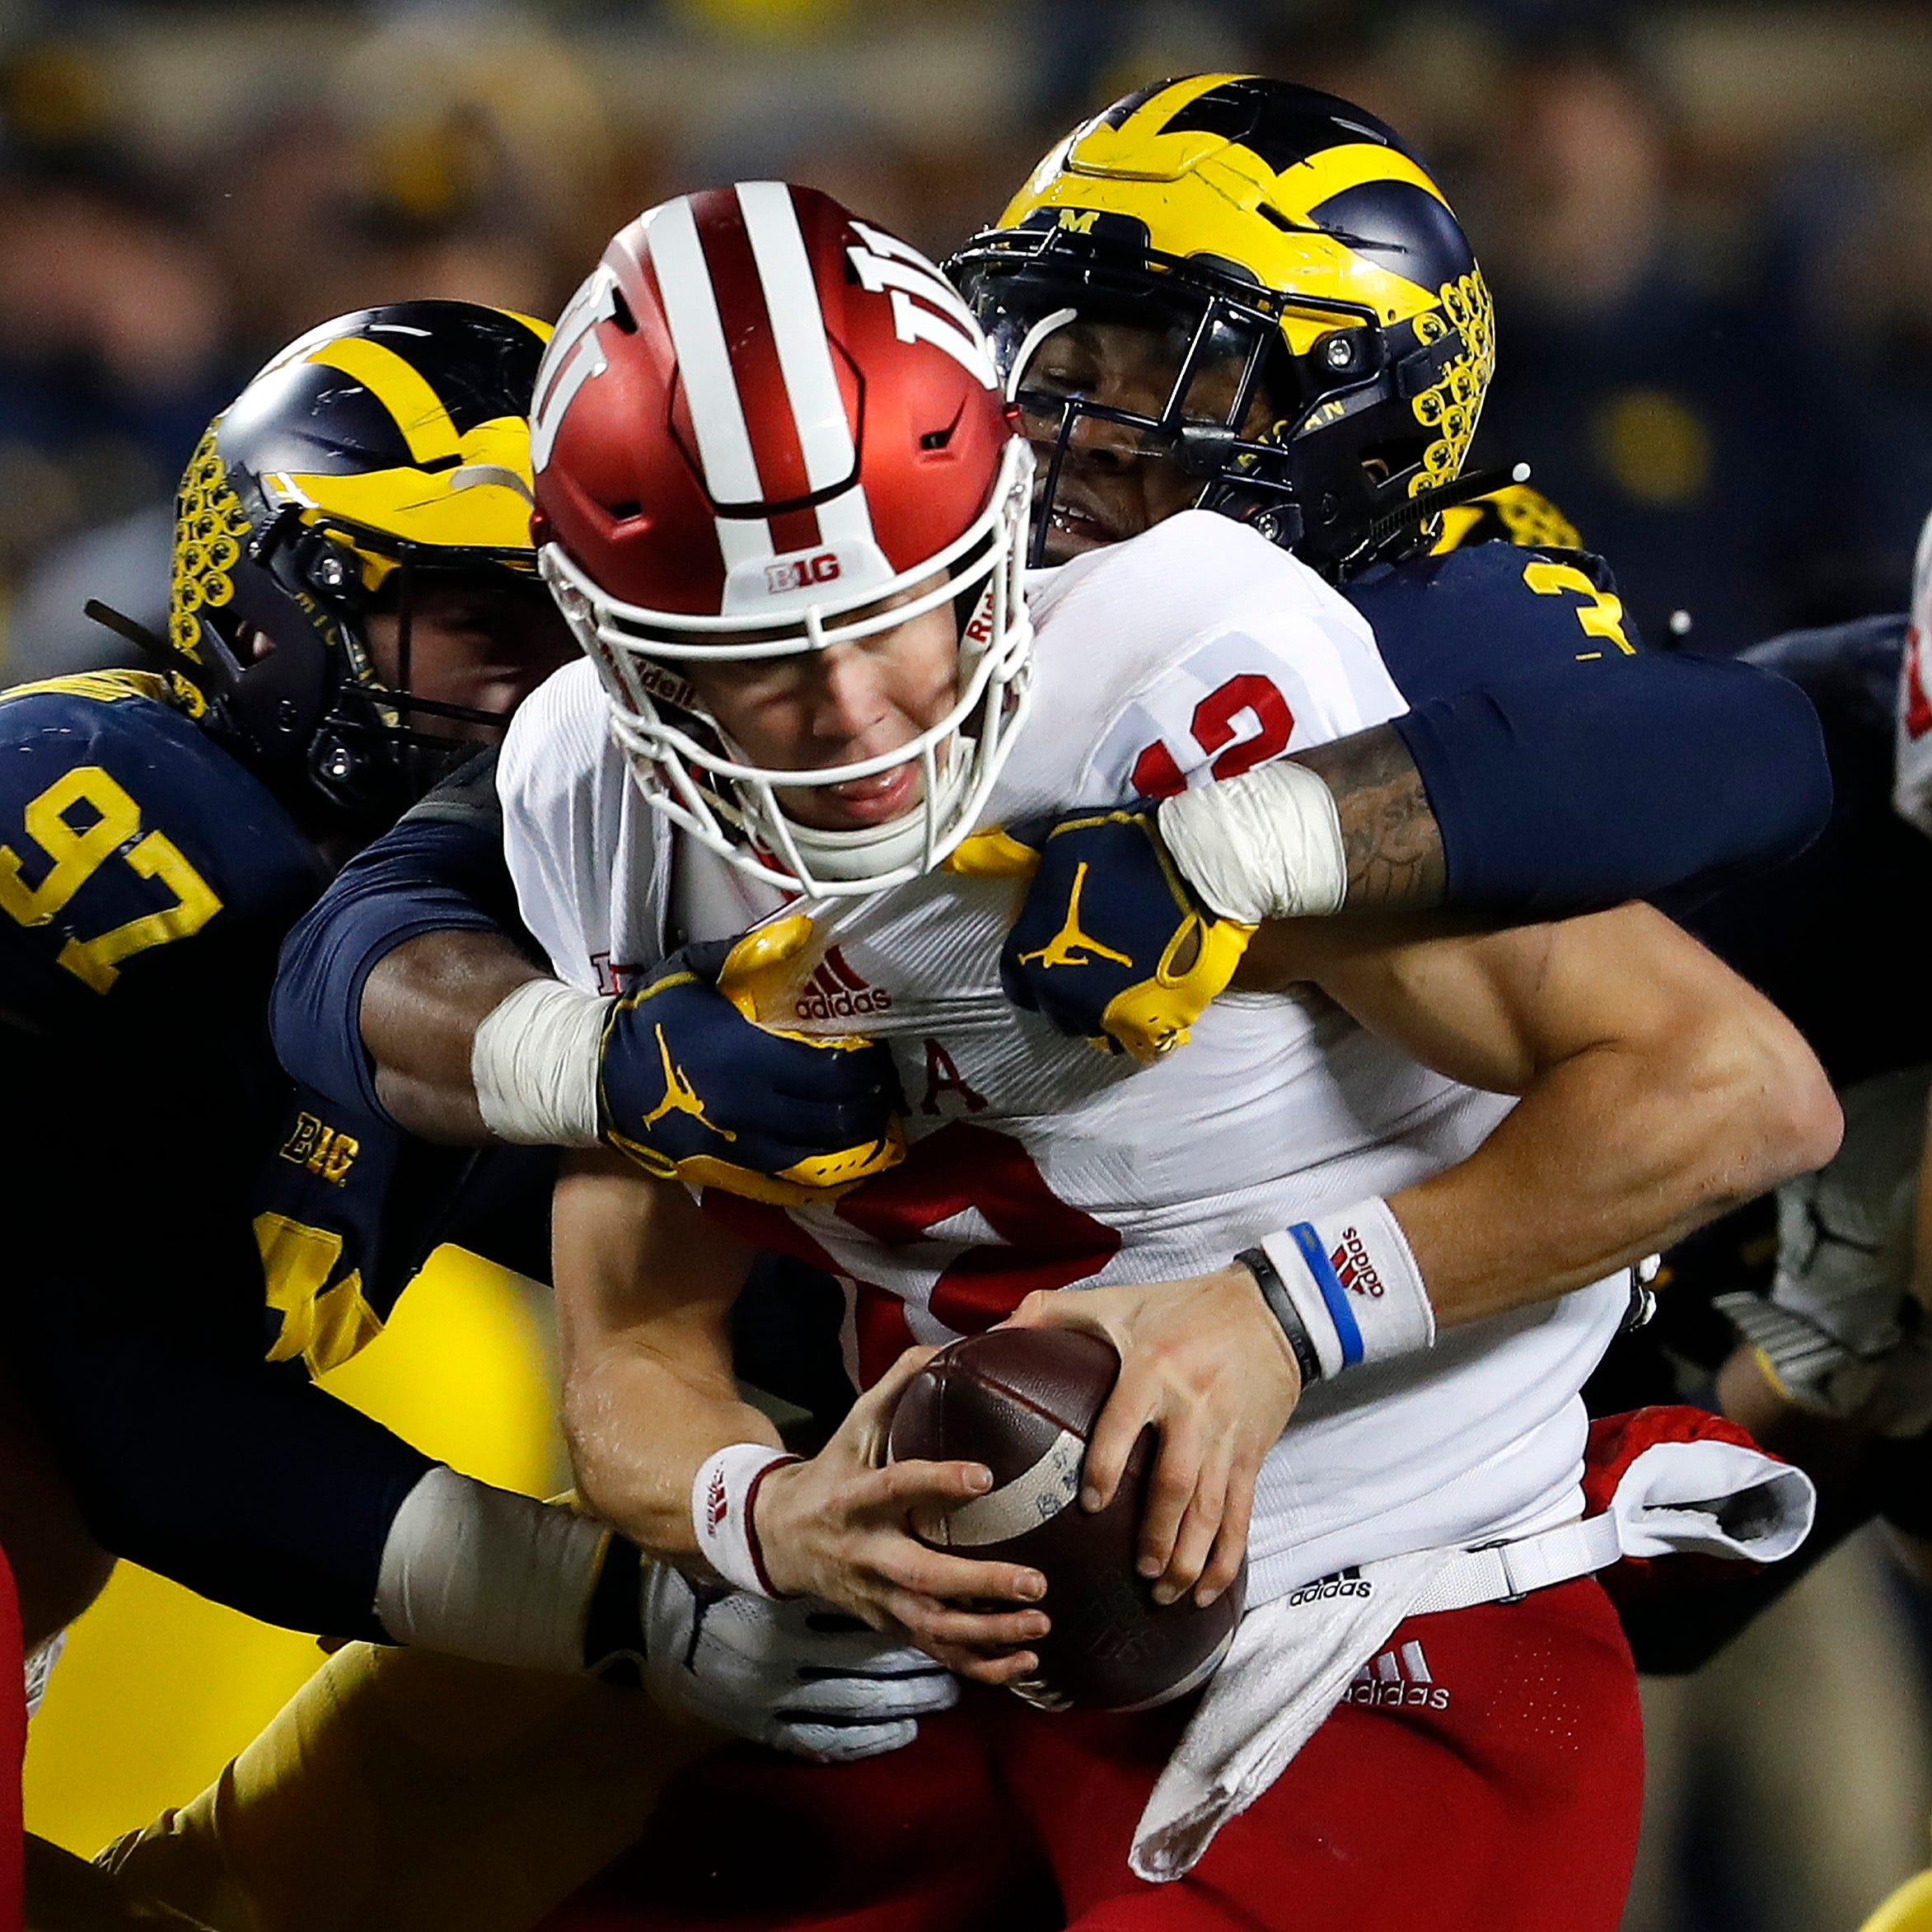 Familiar outcome has Hoosiers 1 game shy of bowl eligibility with 1 game left